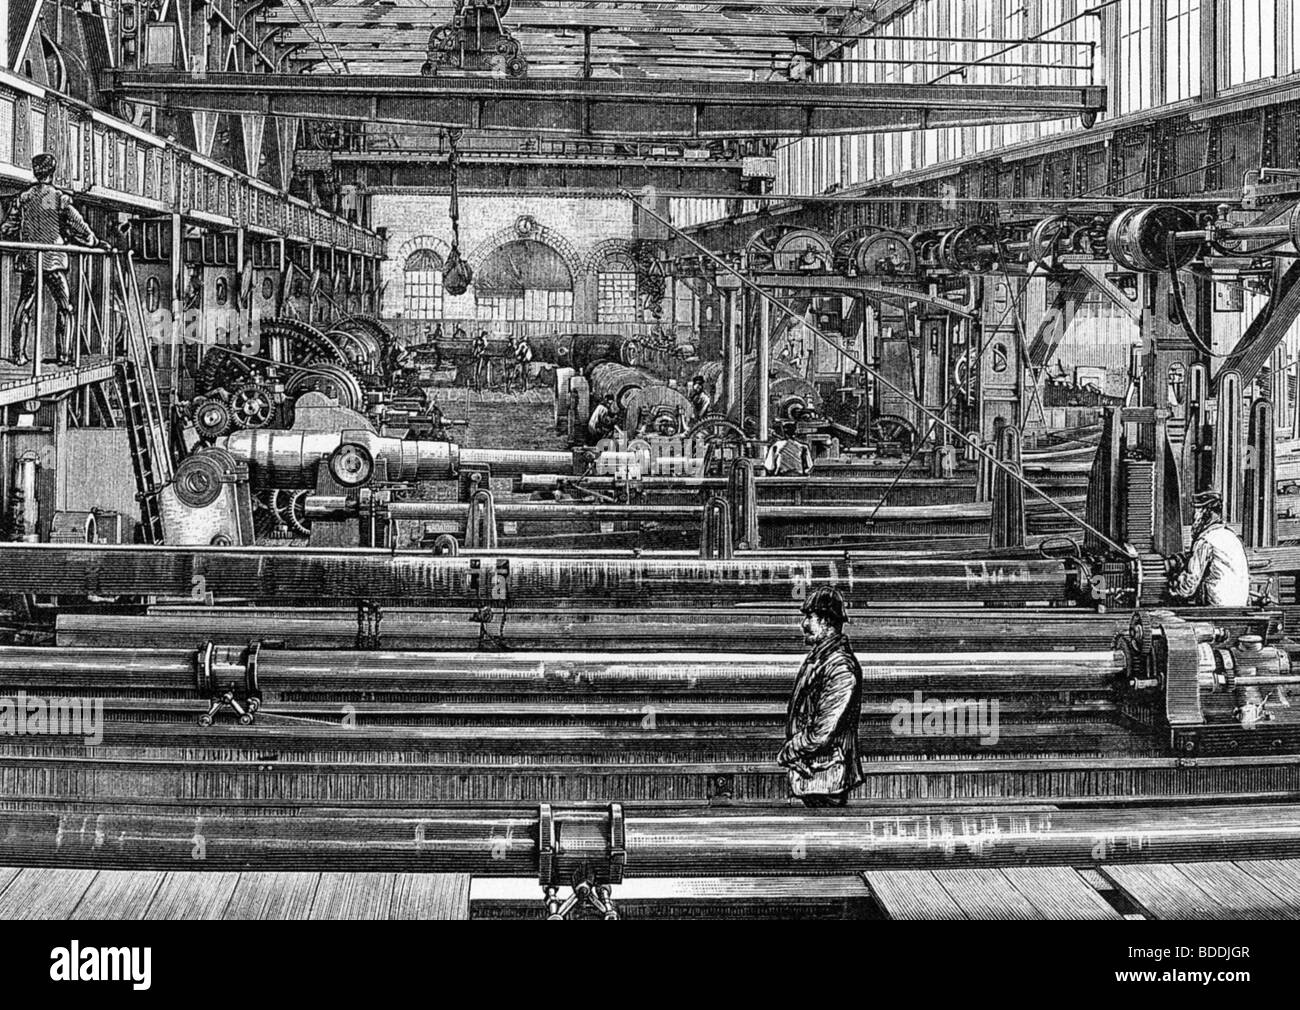 ARMAMENTS - Manufacturing artillery at William Armstrongs Elswick Works in Newcastle in 1887 - Stock Image